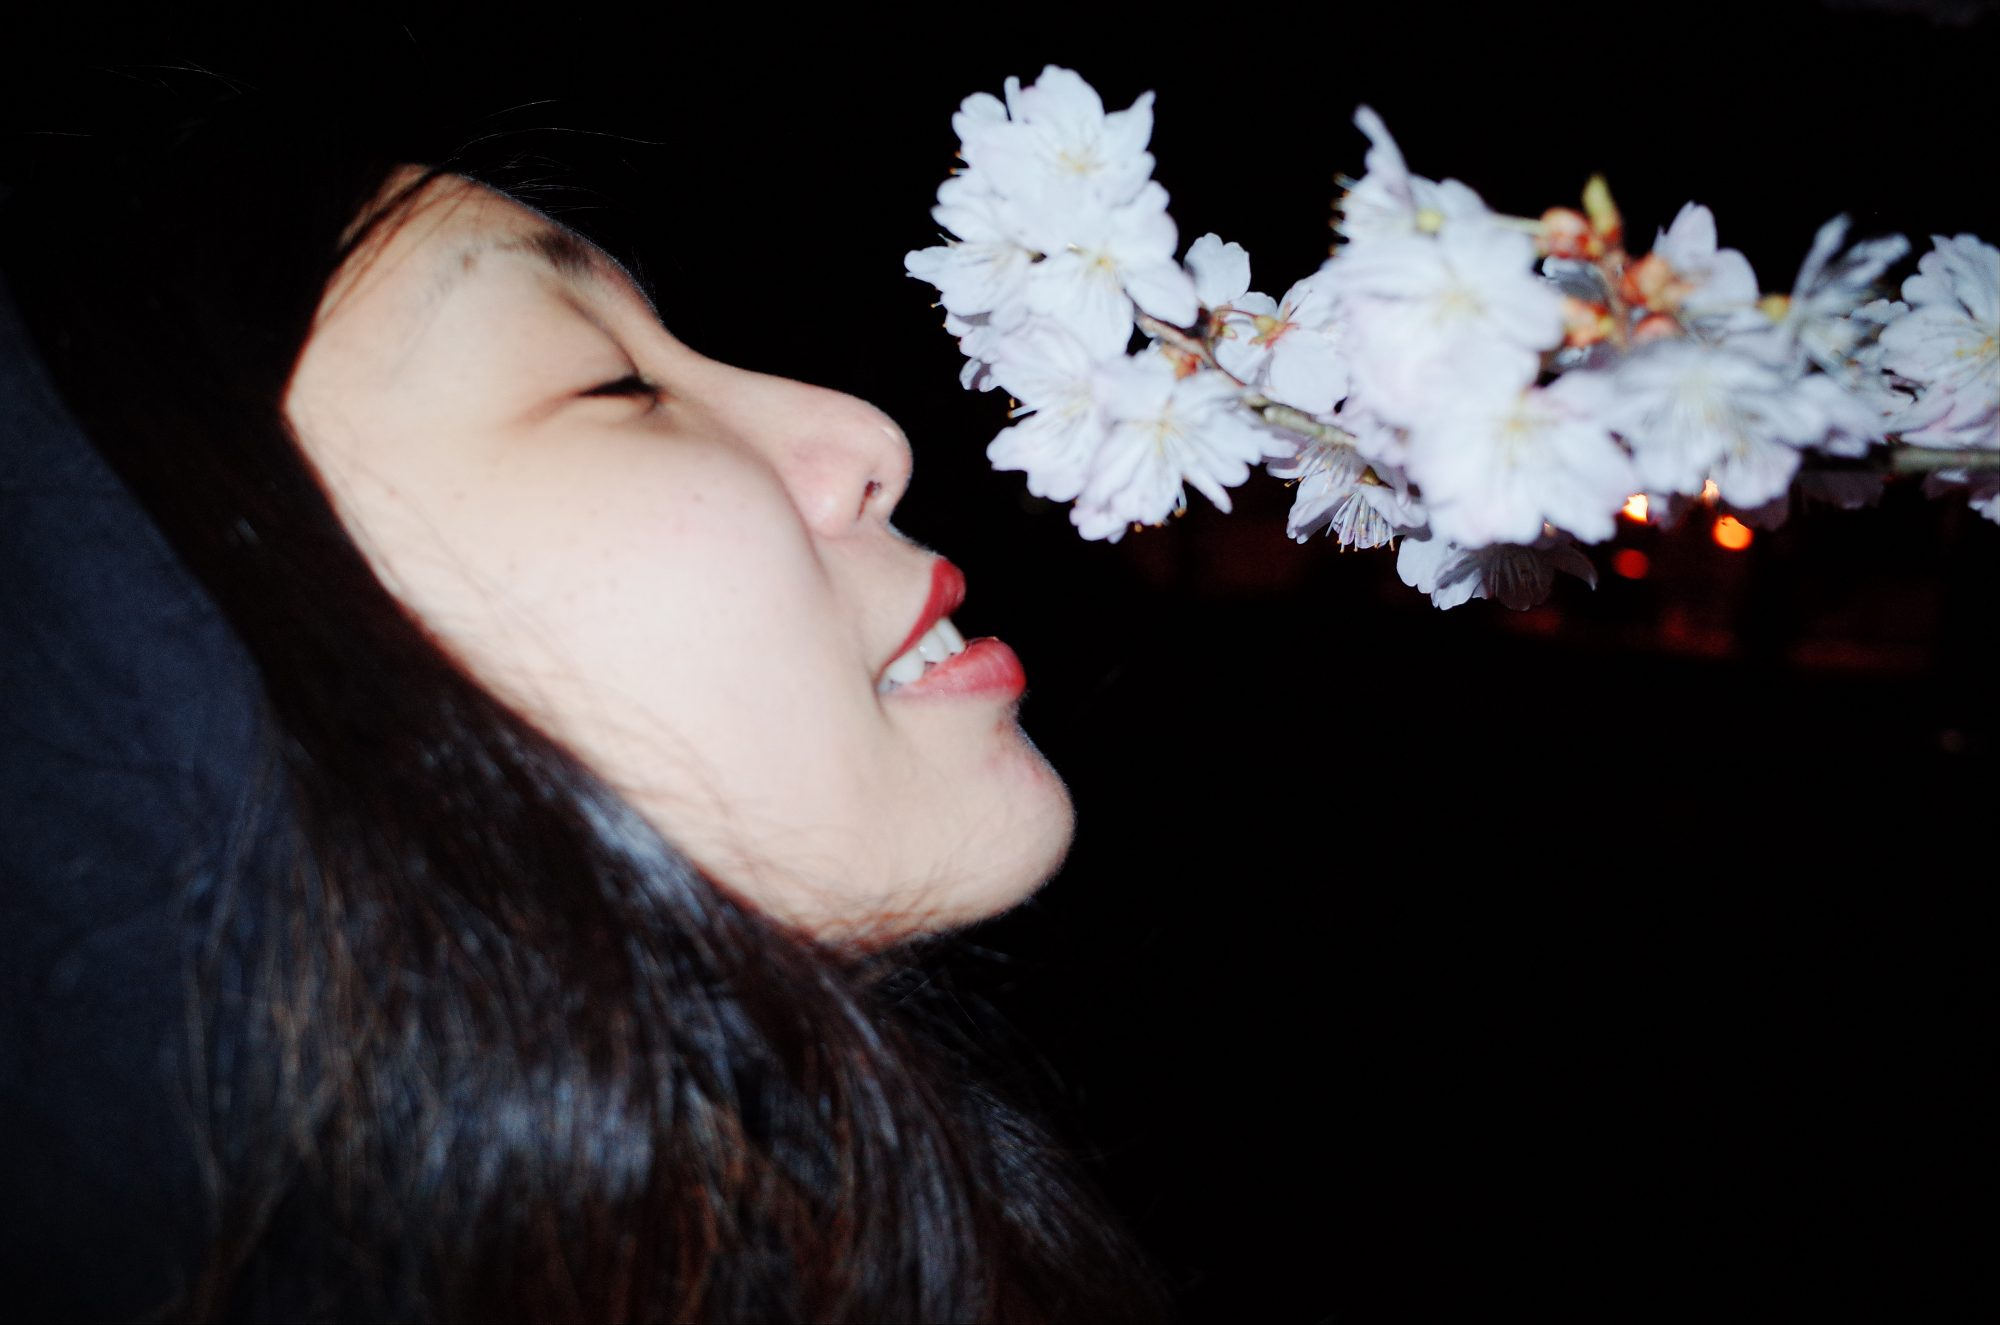 Cindy sniffing cherry blossoms. Uji / Kyoto, 2018